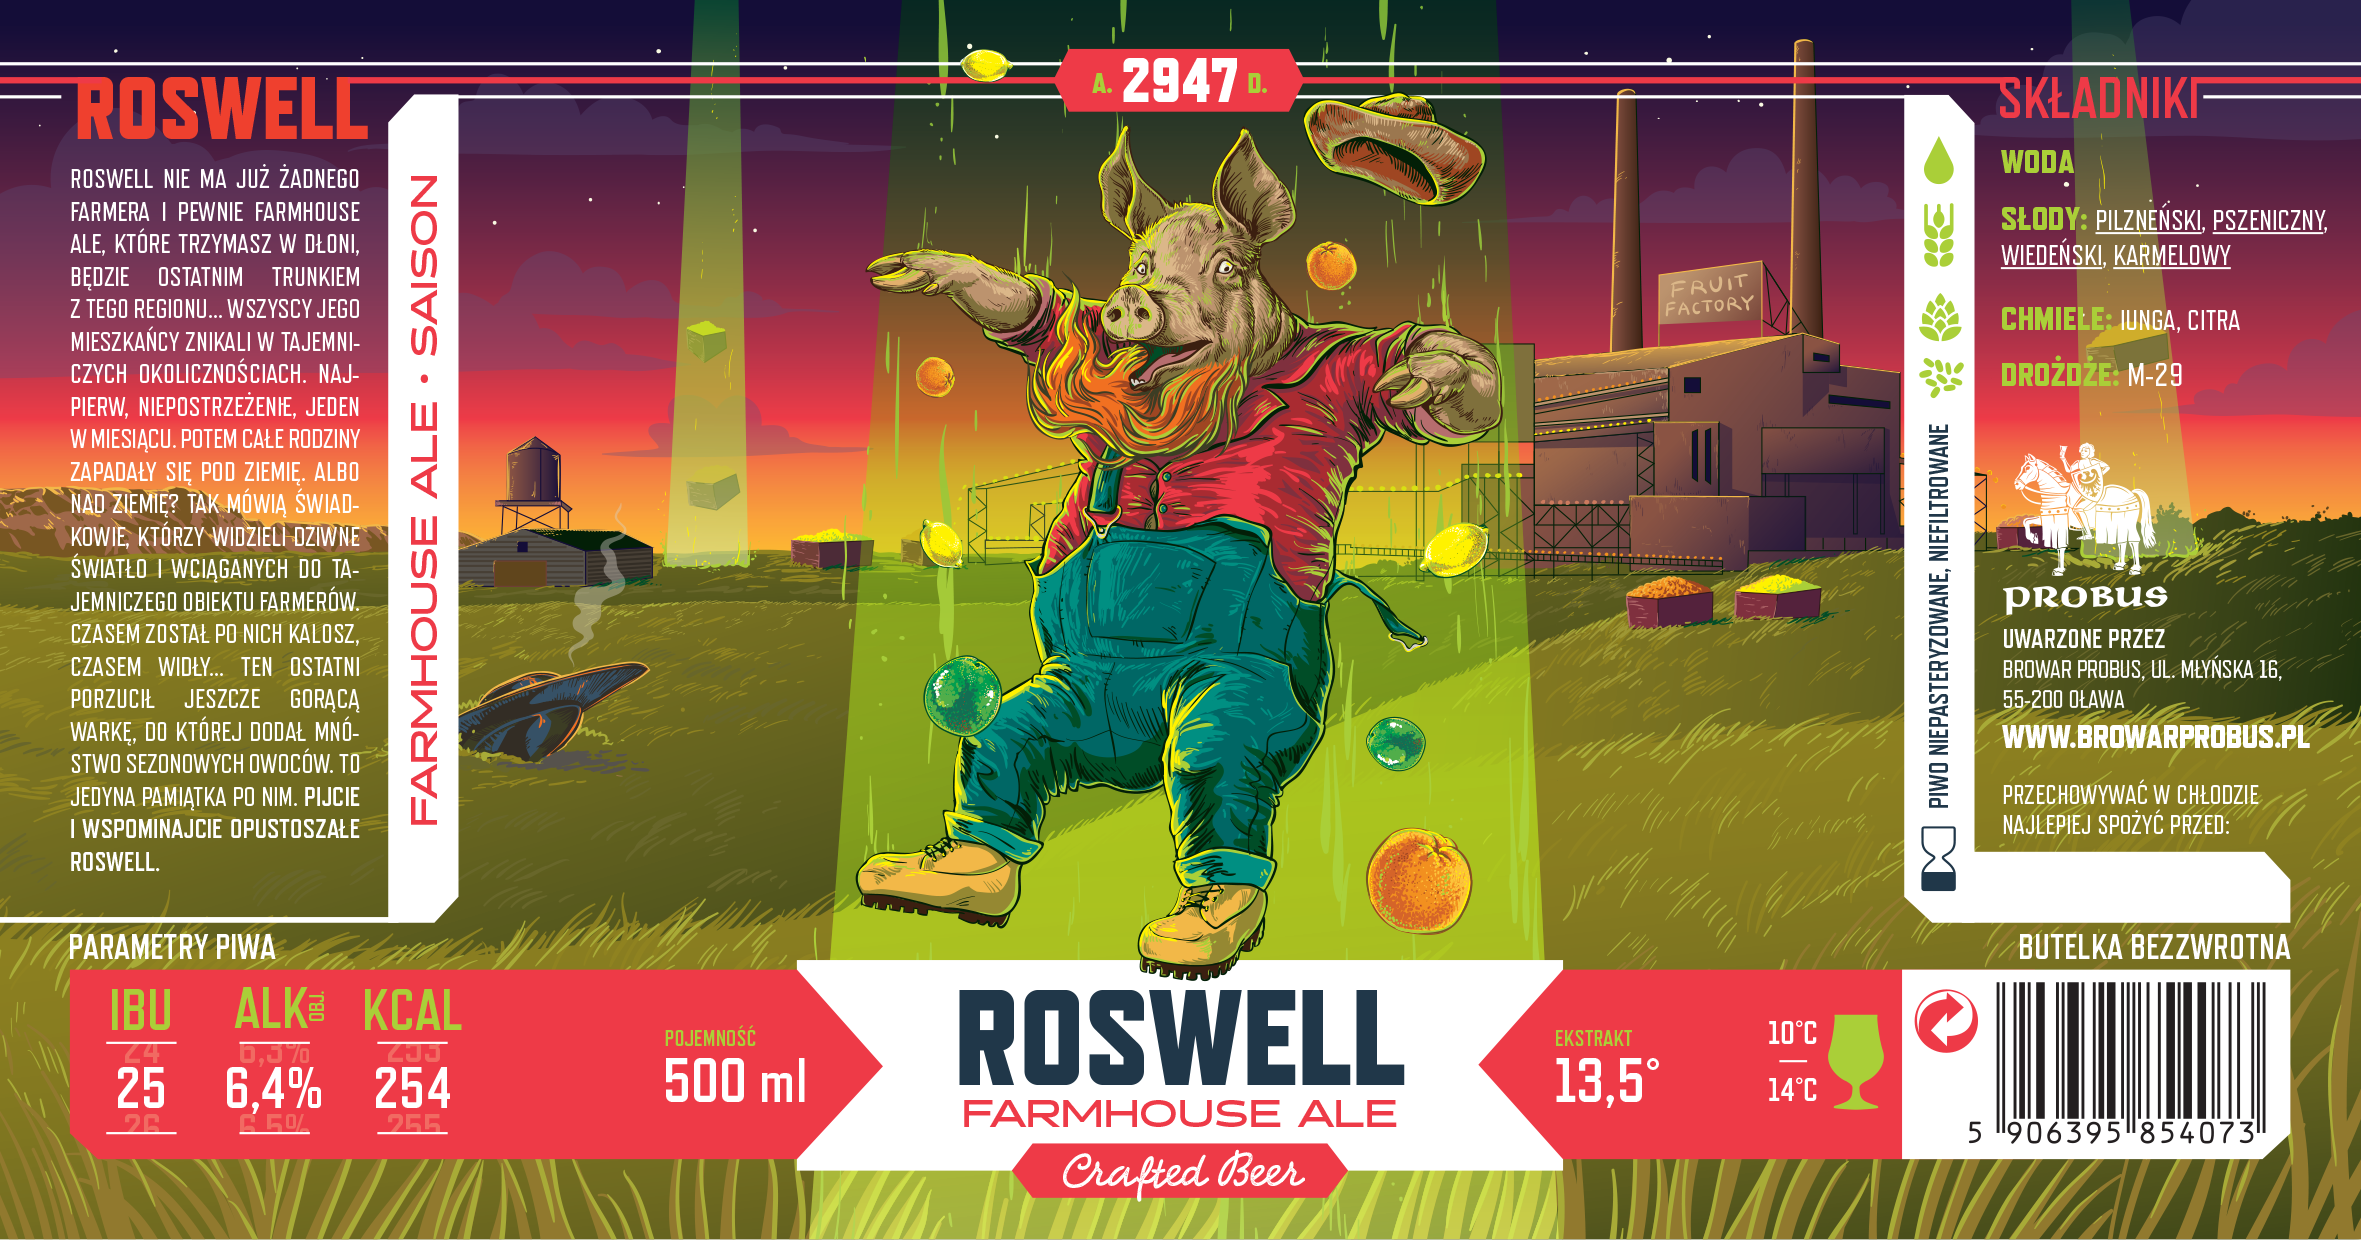 probus-roswell-200x1053mm